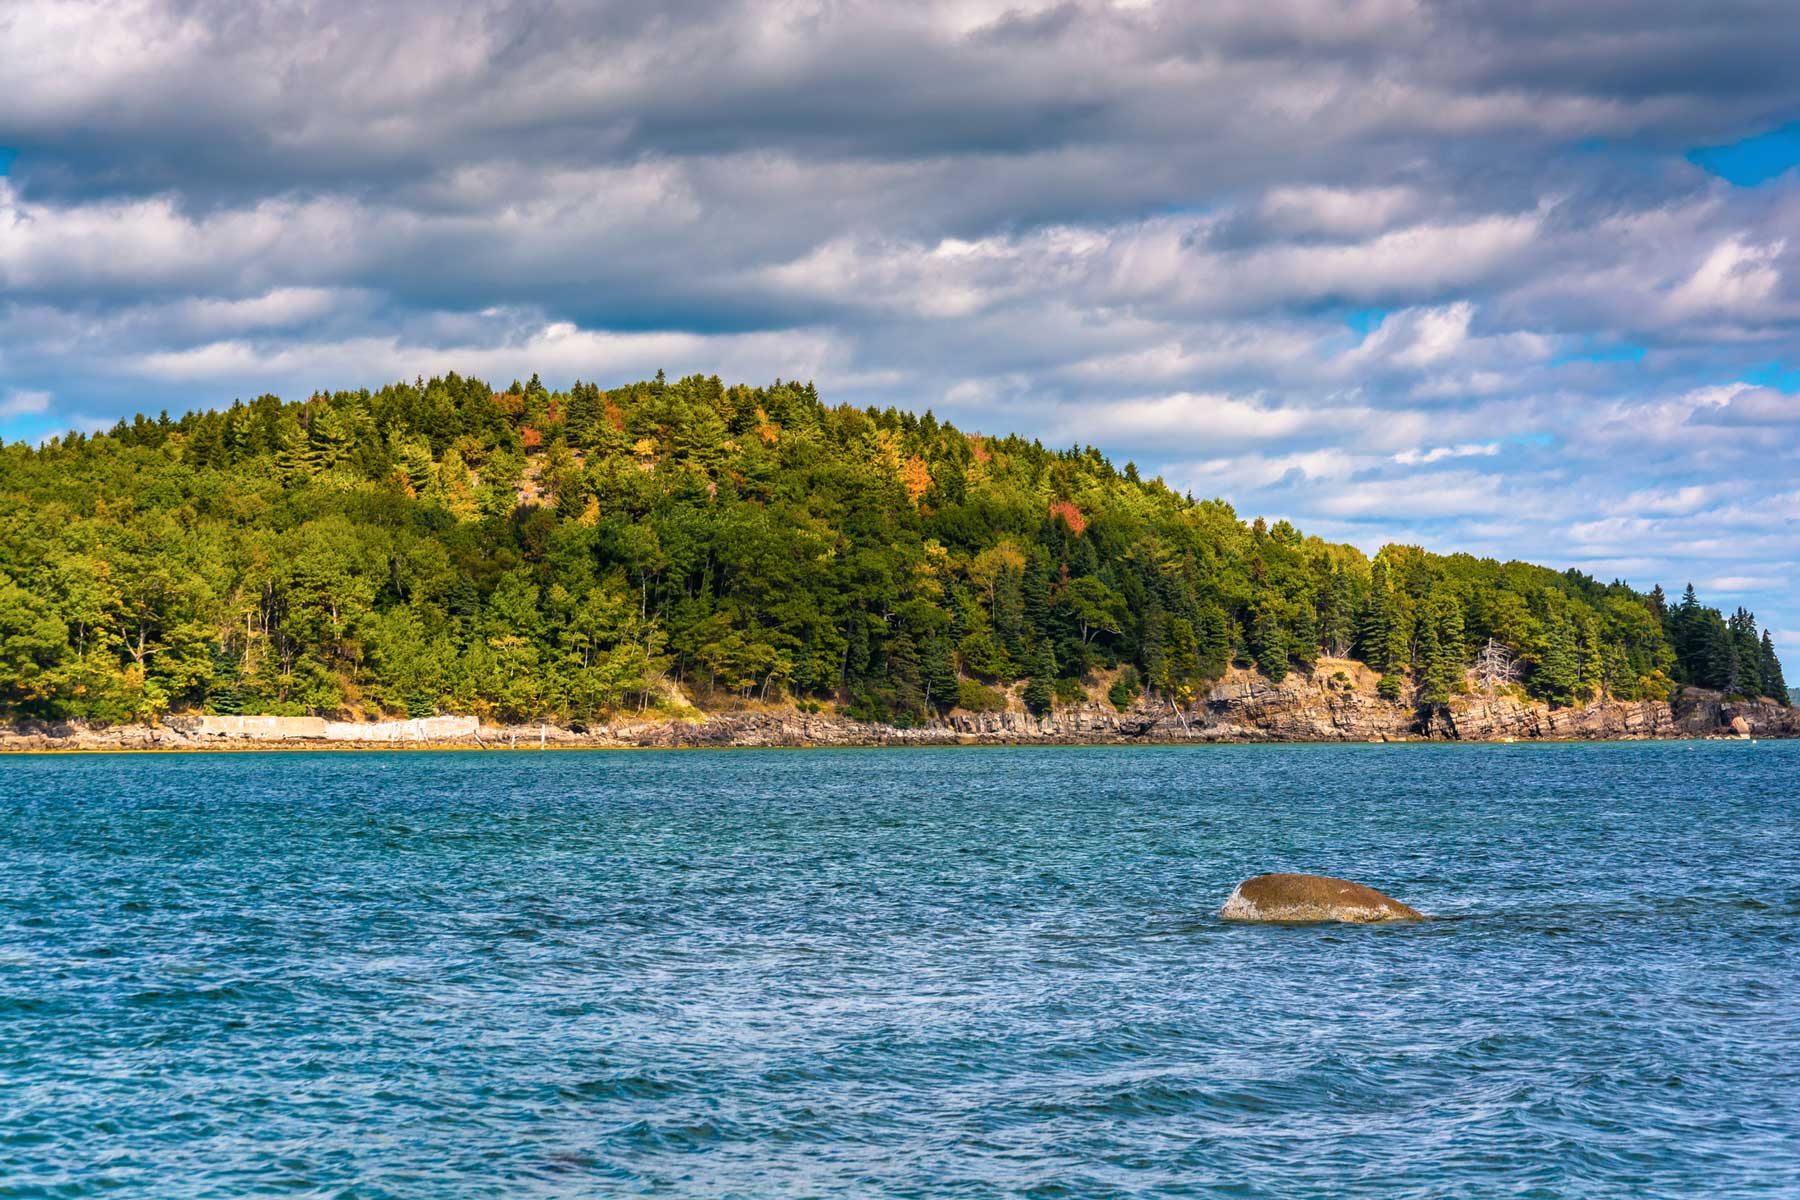 Island in Frenchman Bay, in Bar Harbor, Maine